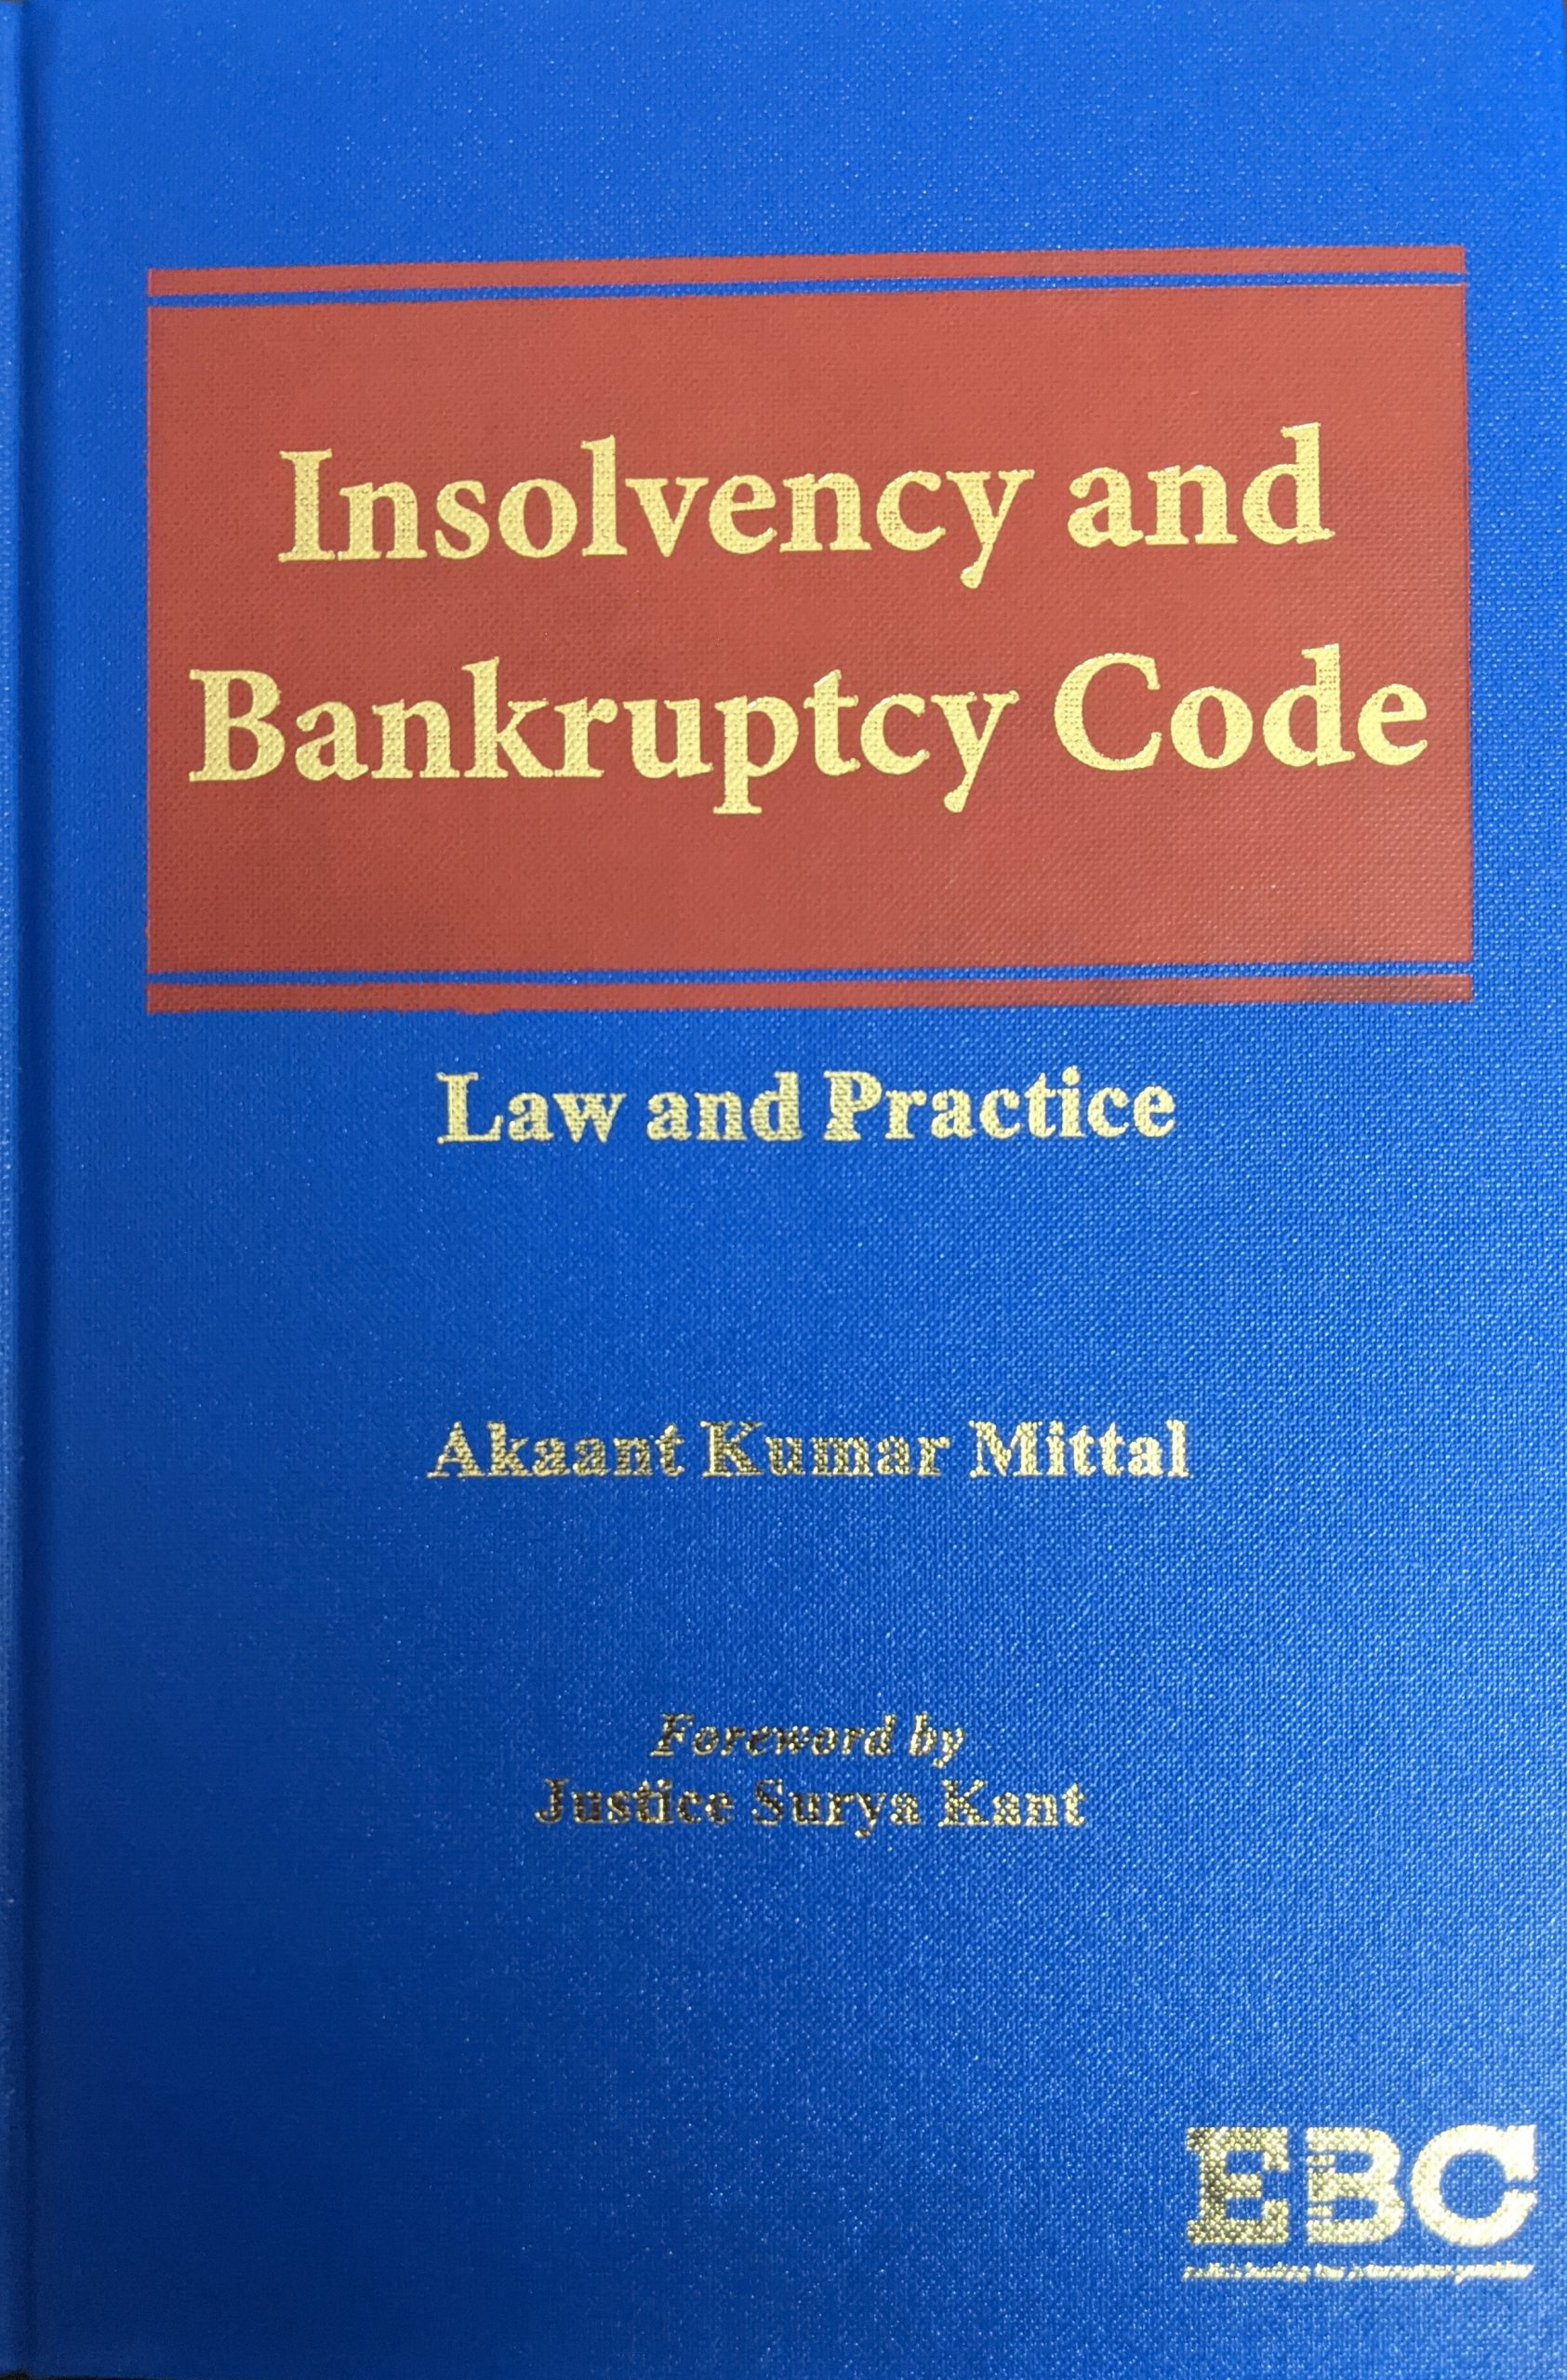 insolvency and bankruptcy code book by akaant kumar mittal